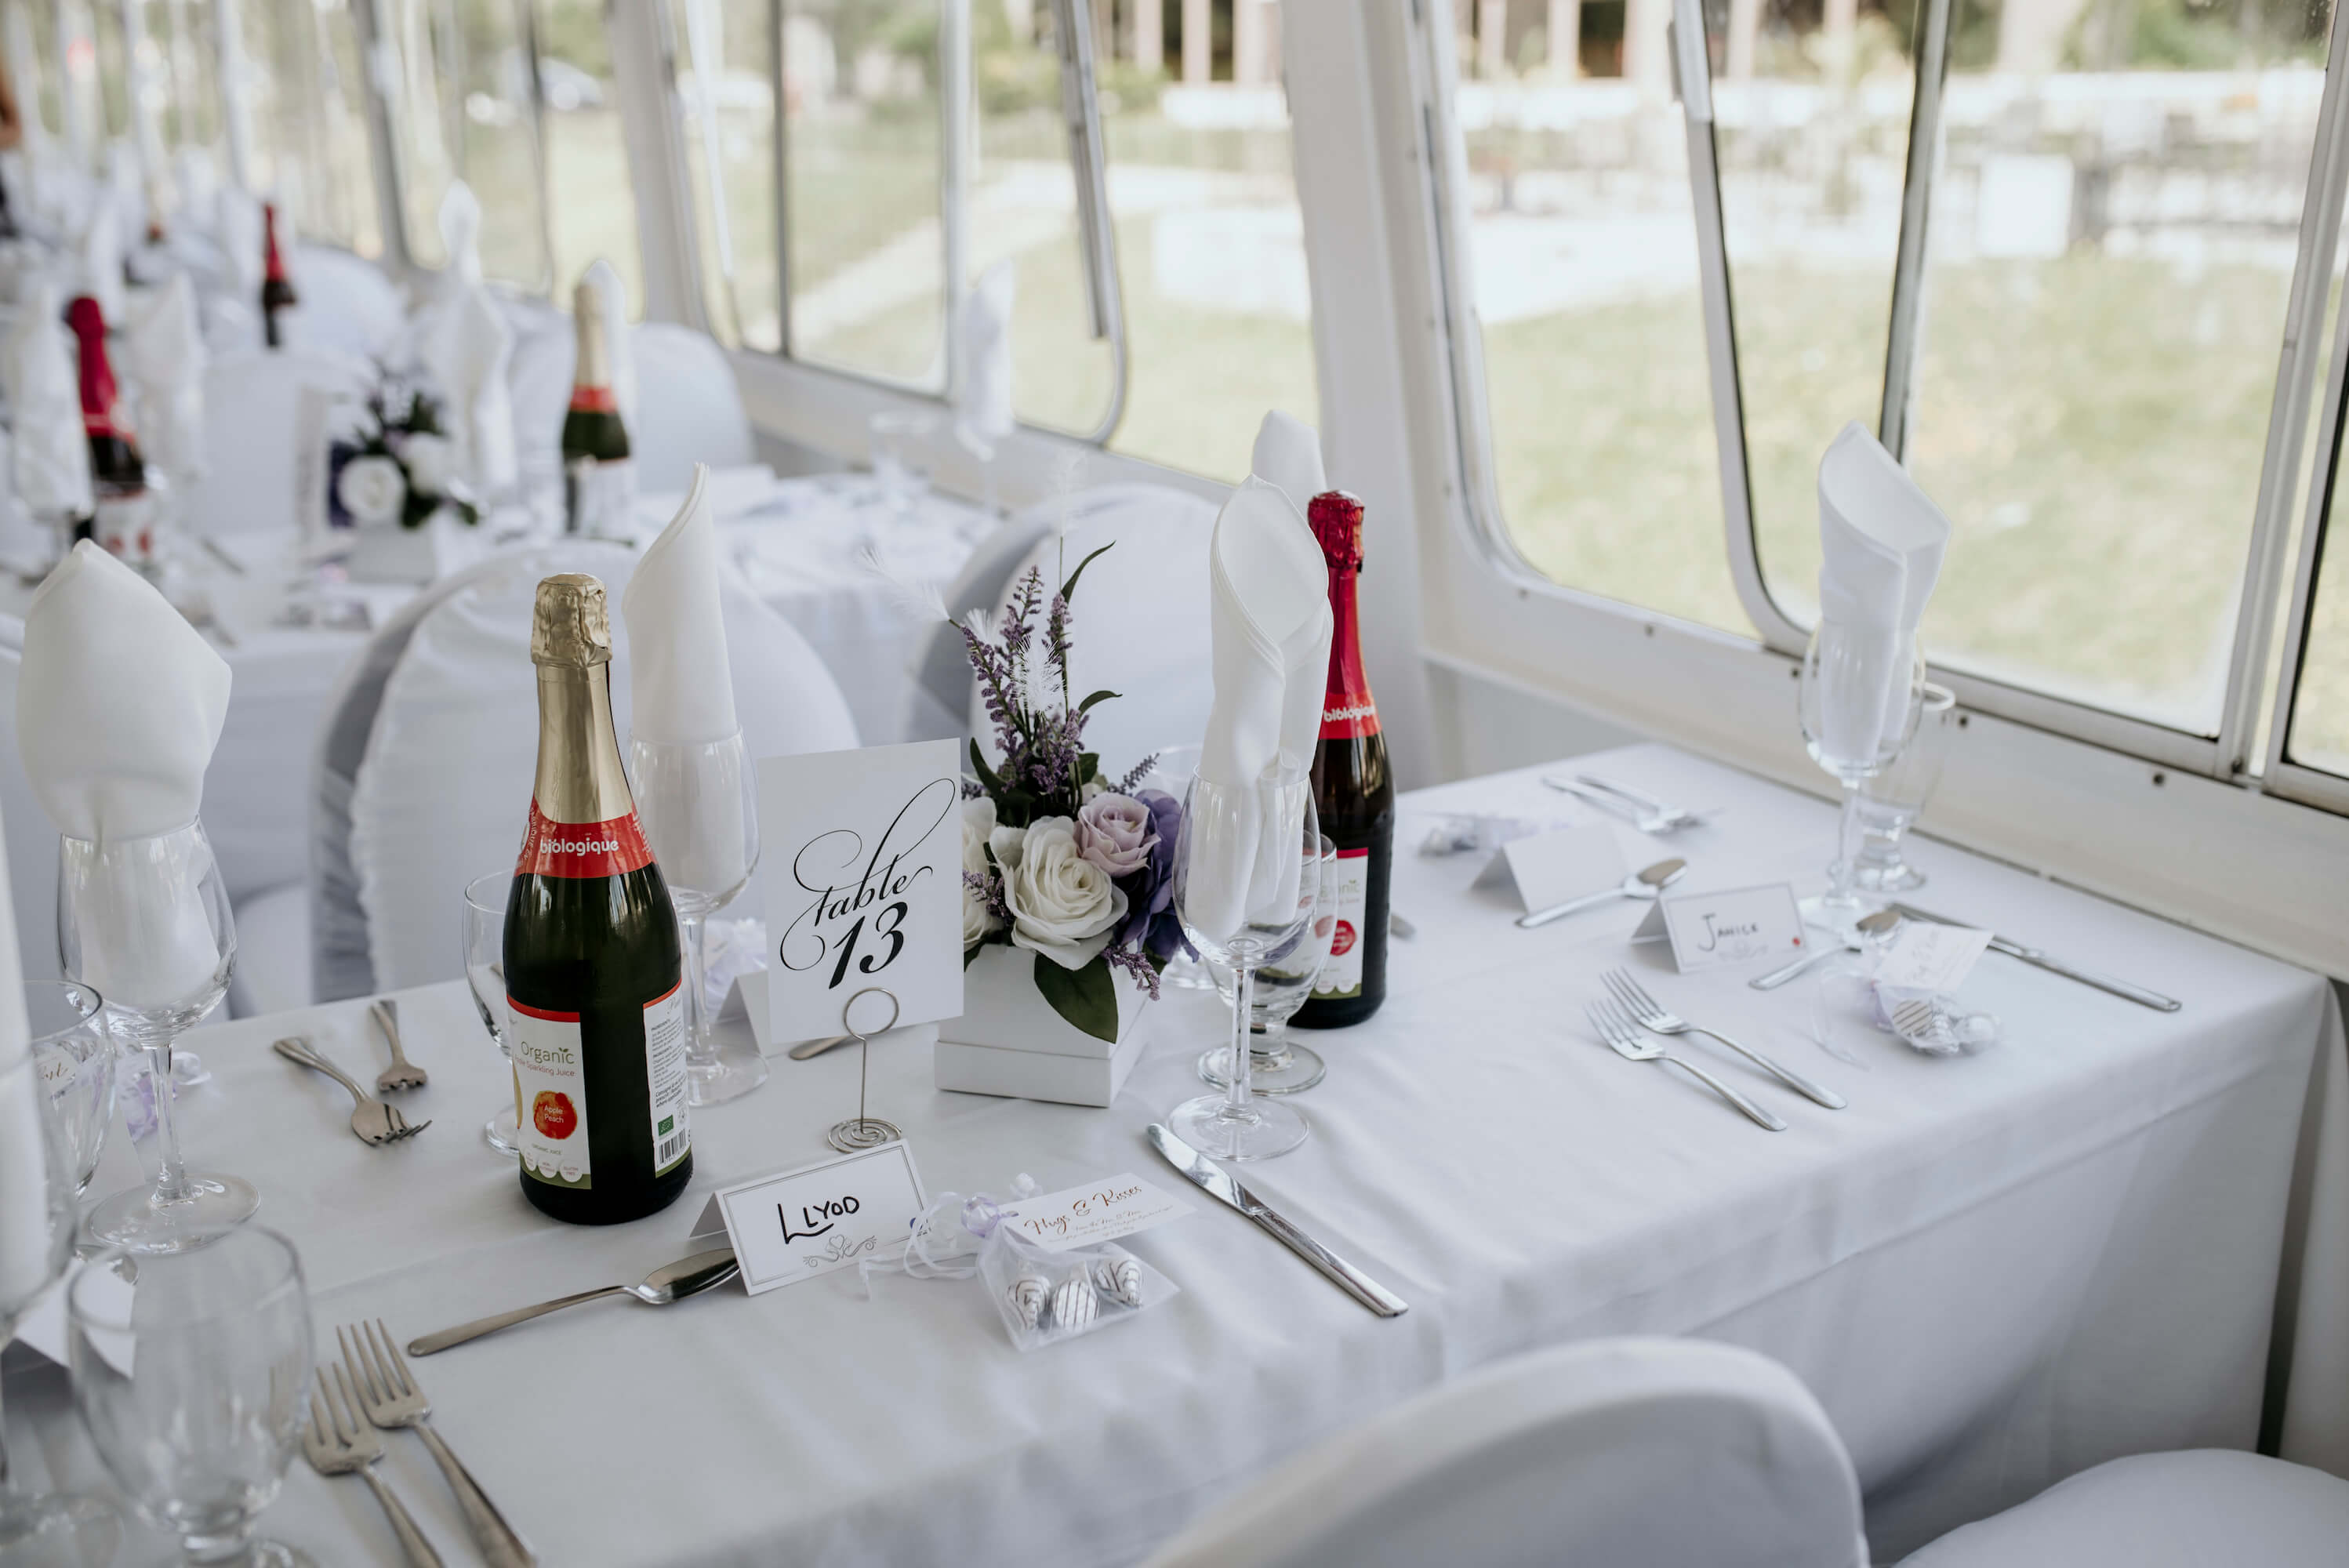 Interior photo of Lady Muskoka of table 13 during wedding